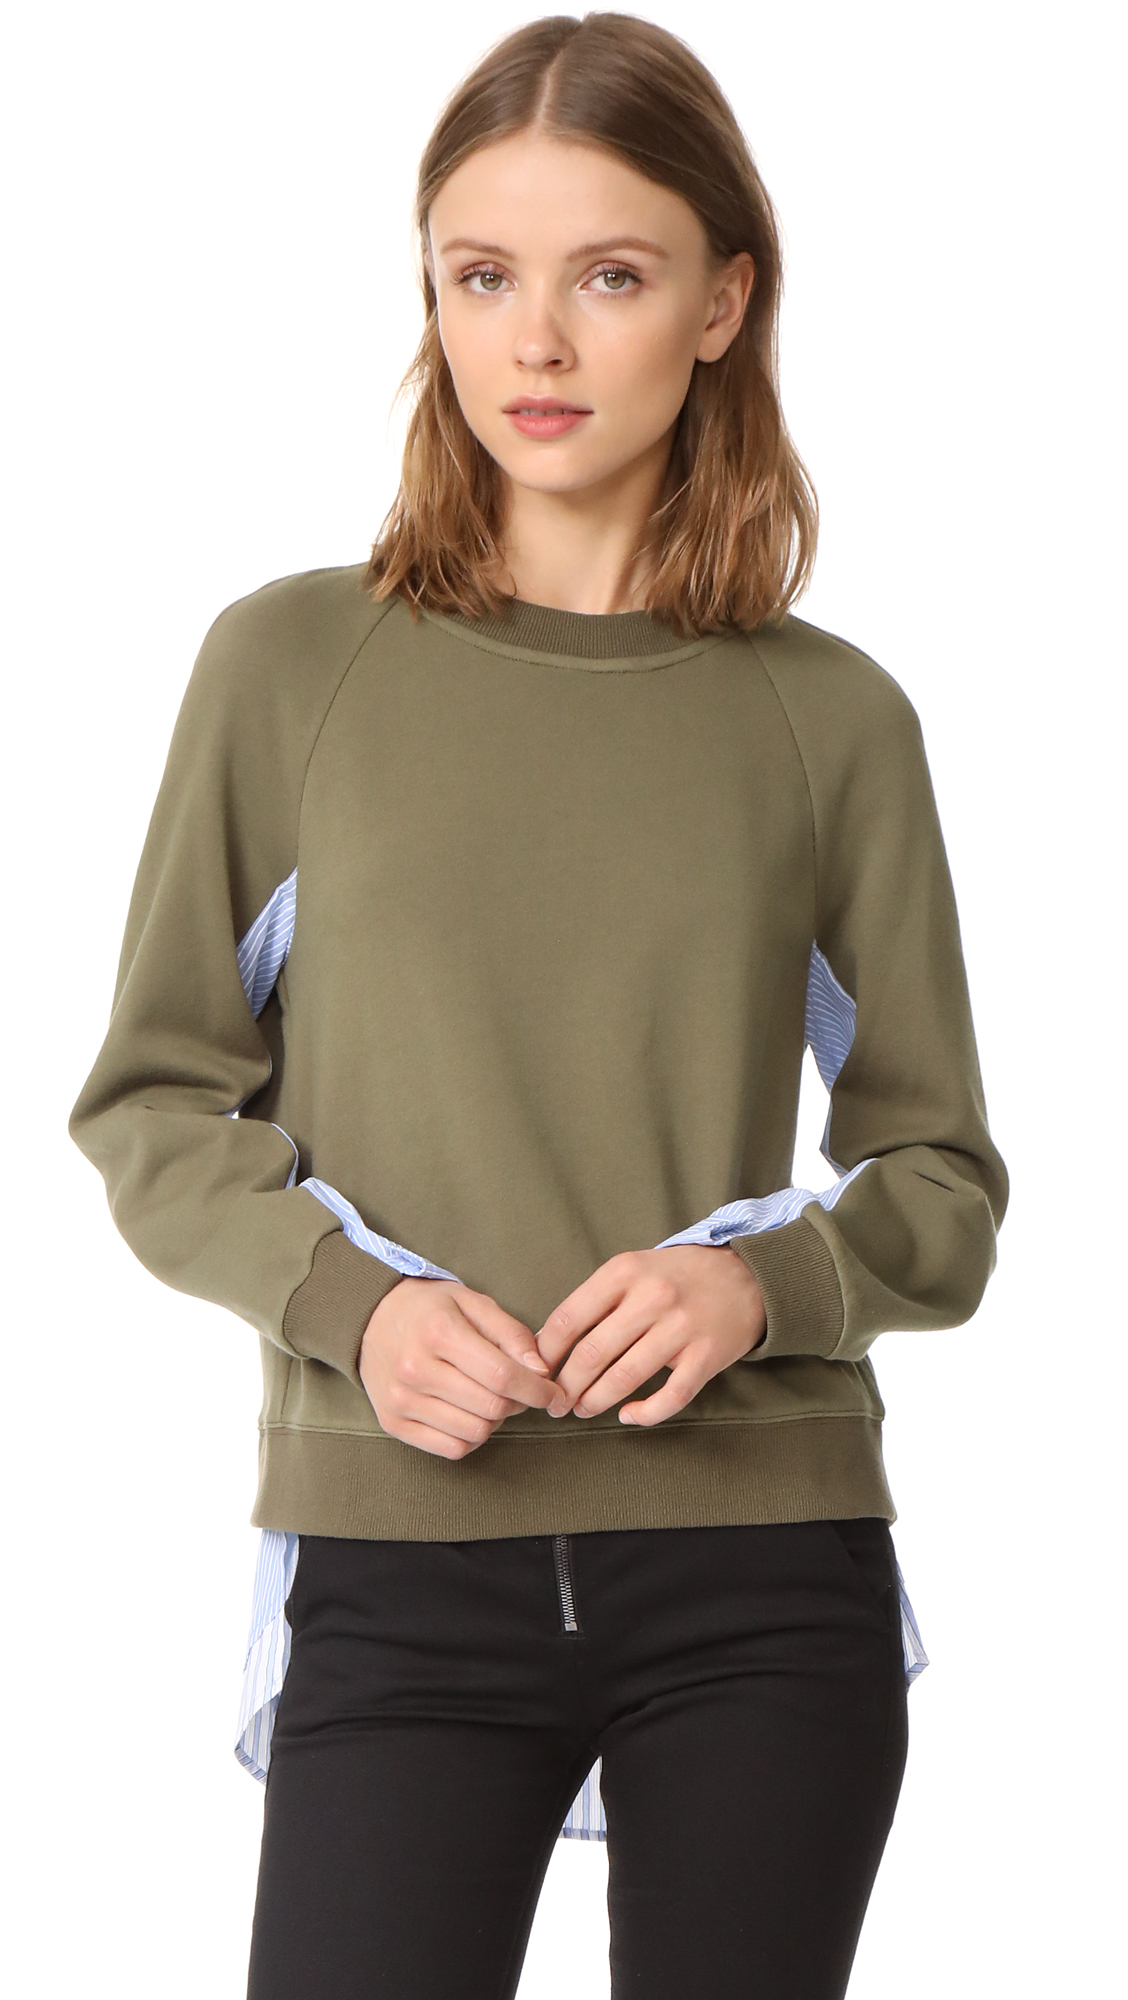 Derek Lam 10 Crosby Sweatshirt with Shirting Combo - Army